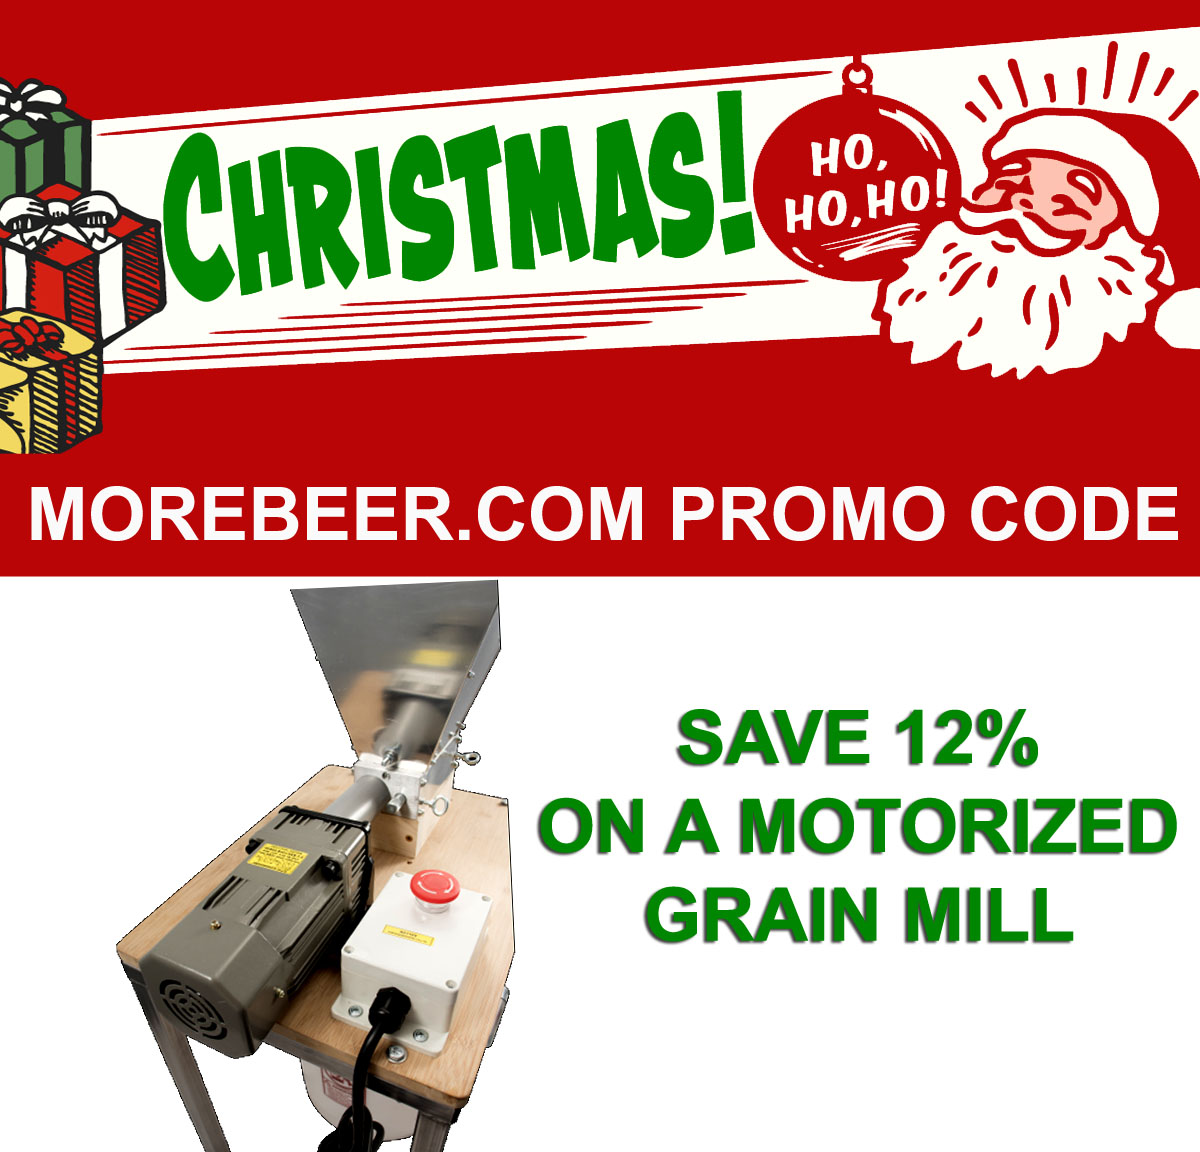 Coupon Code For Save 12% On A Motorized Malt Mill at More Beer! Coupon Code